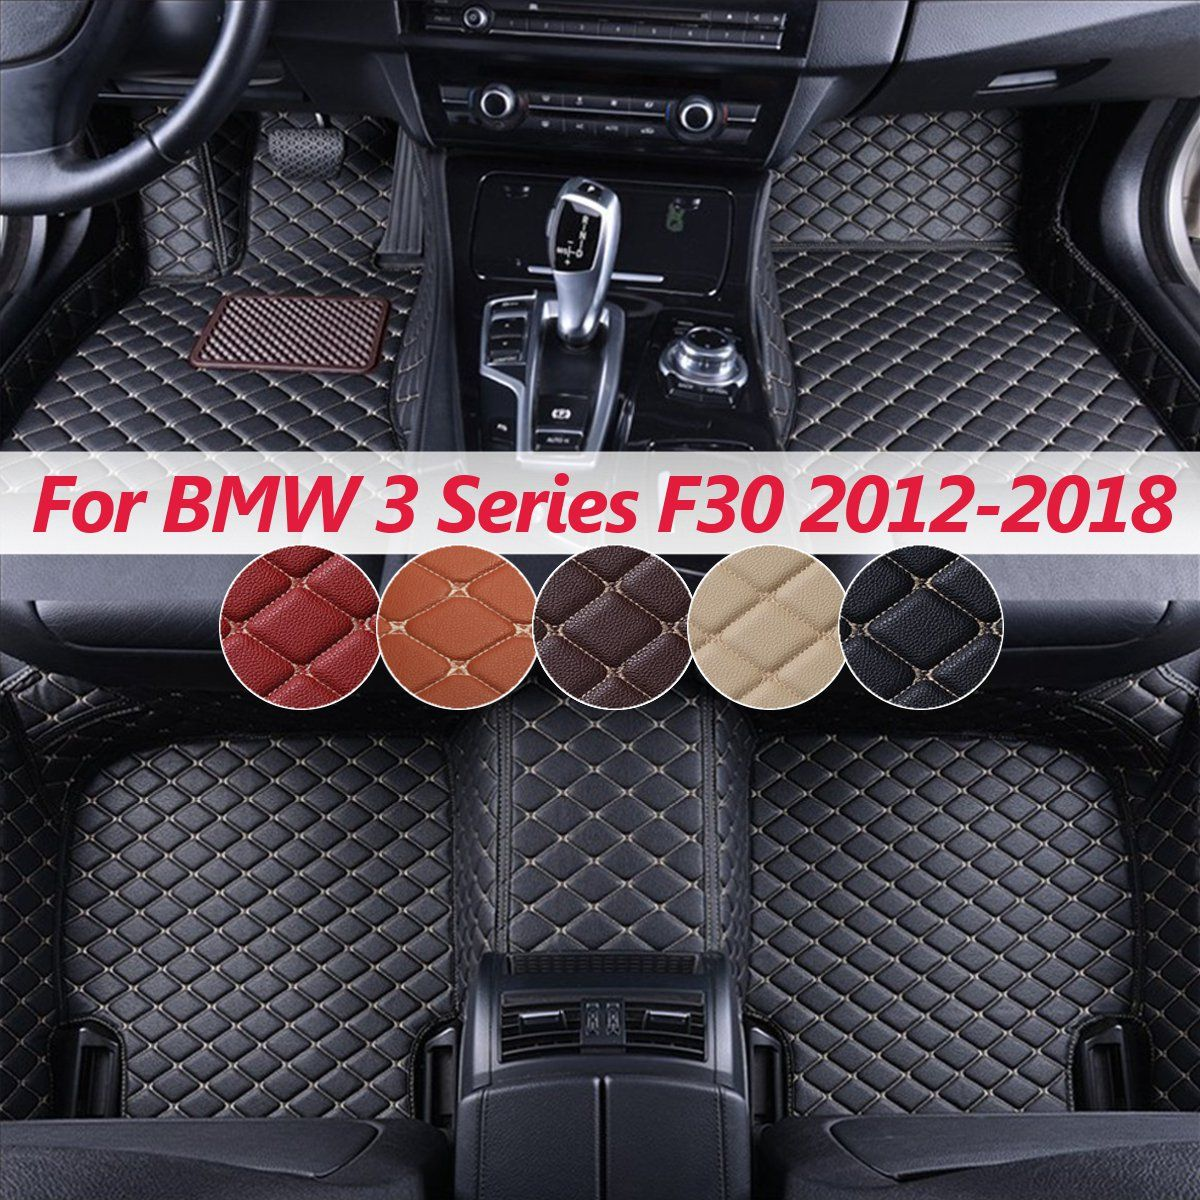 Car Floor Mats for BMW e30 e34 e36 e39 e46 e60 e90 f10 f30 x1 x3 x4 x5 x6  1/2/3/4/5/6/7 3 Series F30 2000-2018 5 Seat LHD